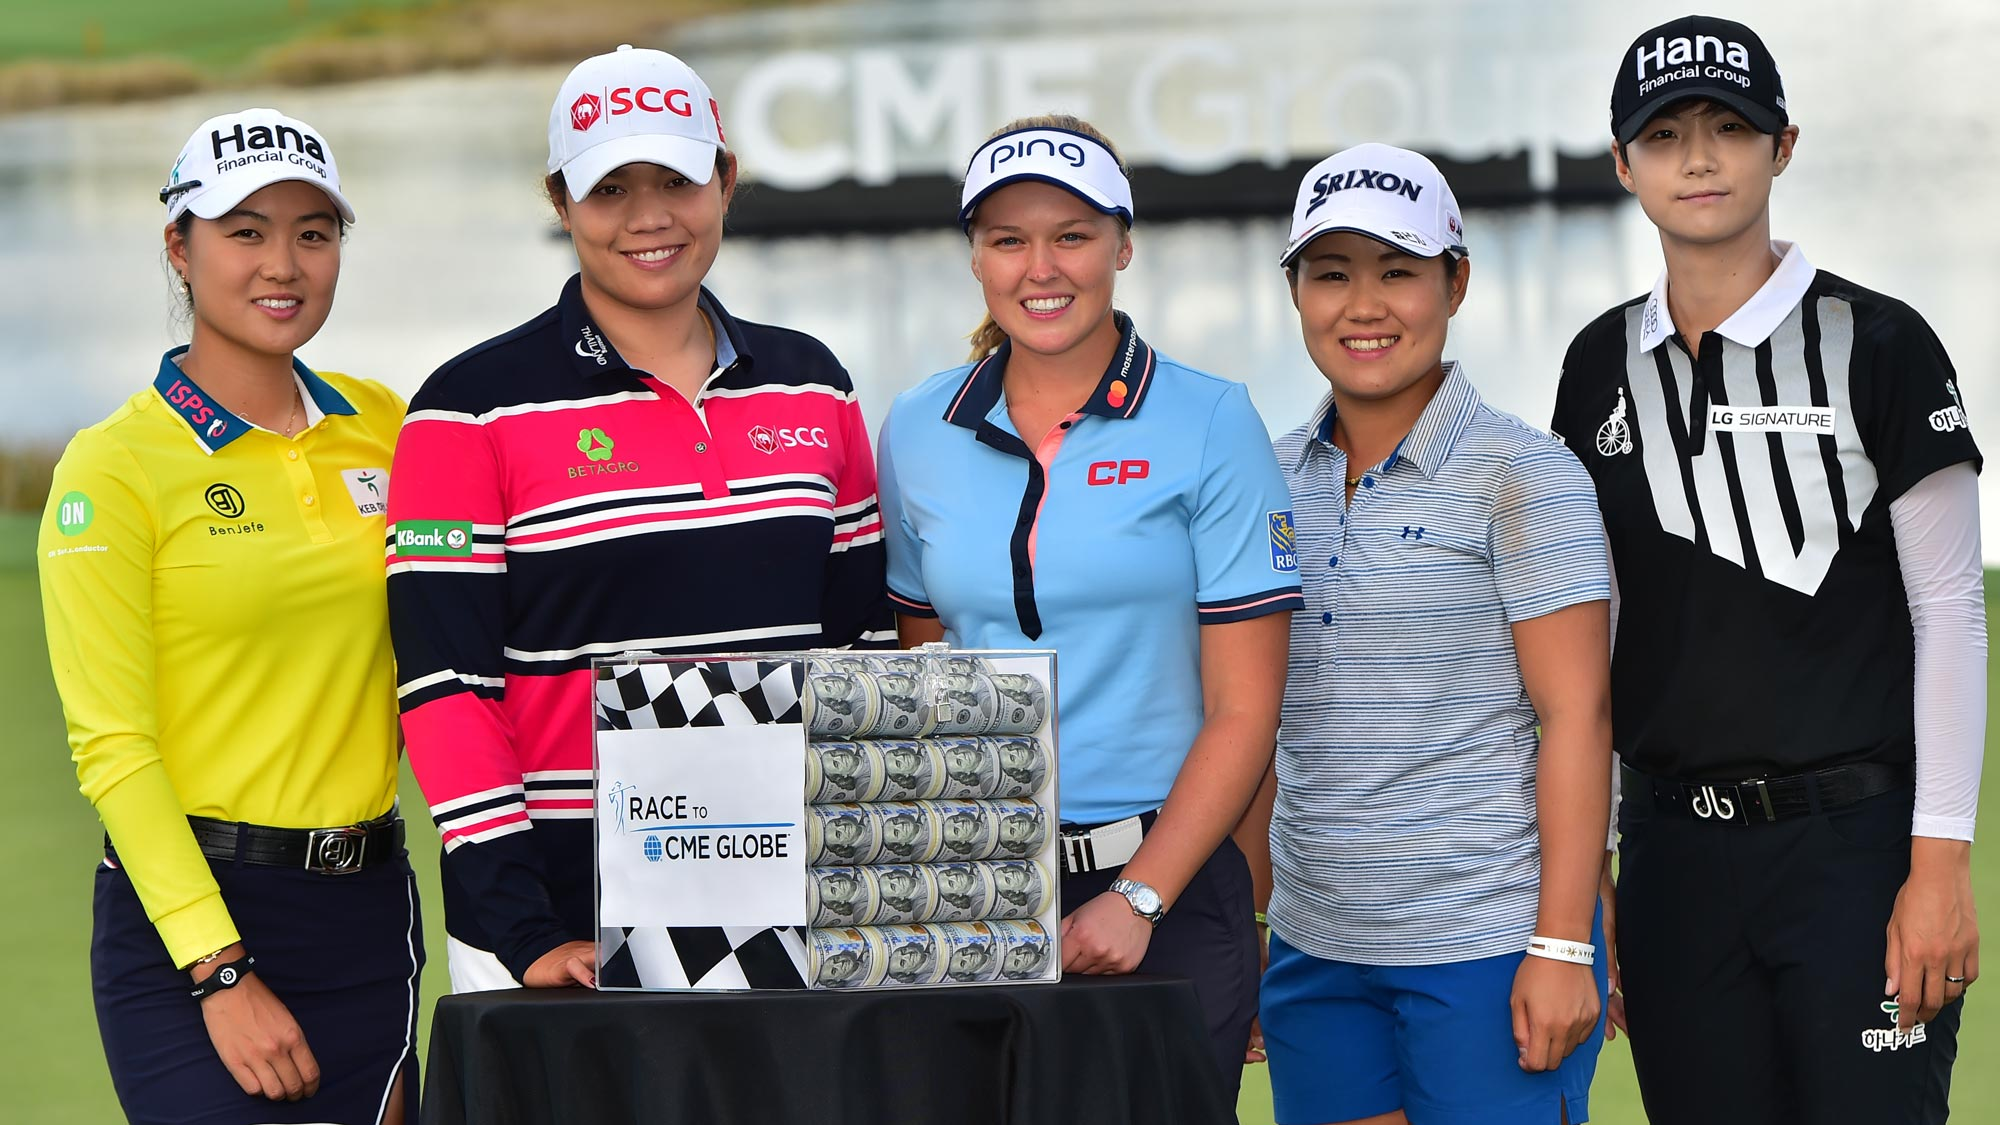 (left to right) Minjee Lee of Australia, Ariya Jutanugarn of Thailand, Brooke Henderson of Canada, Nasa Hataoka of Japan and Sung Hyun Park of South Korea pose for a photo with the Race for the CME Globe Money Box on the 18th green prior to the LPGA CME Group Tour Championship